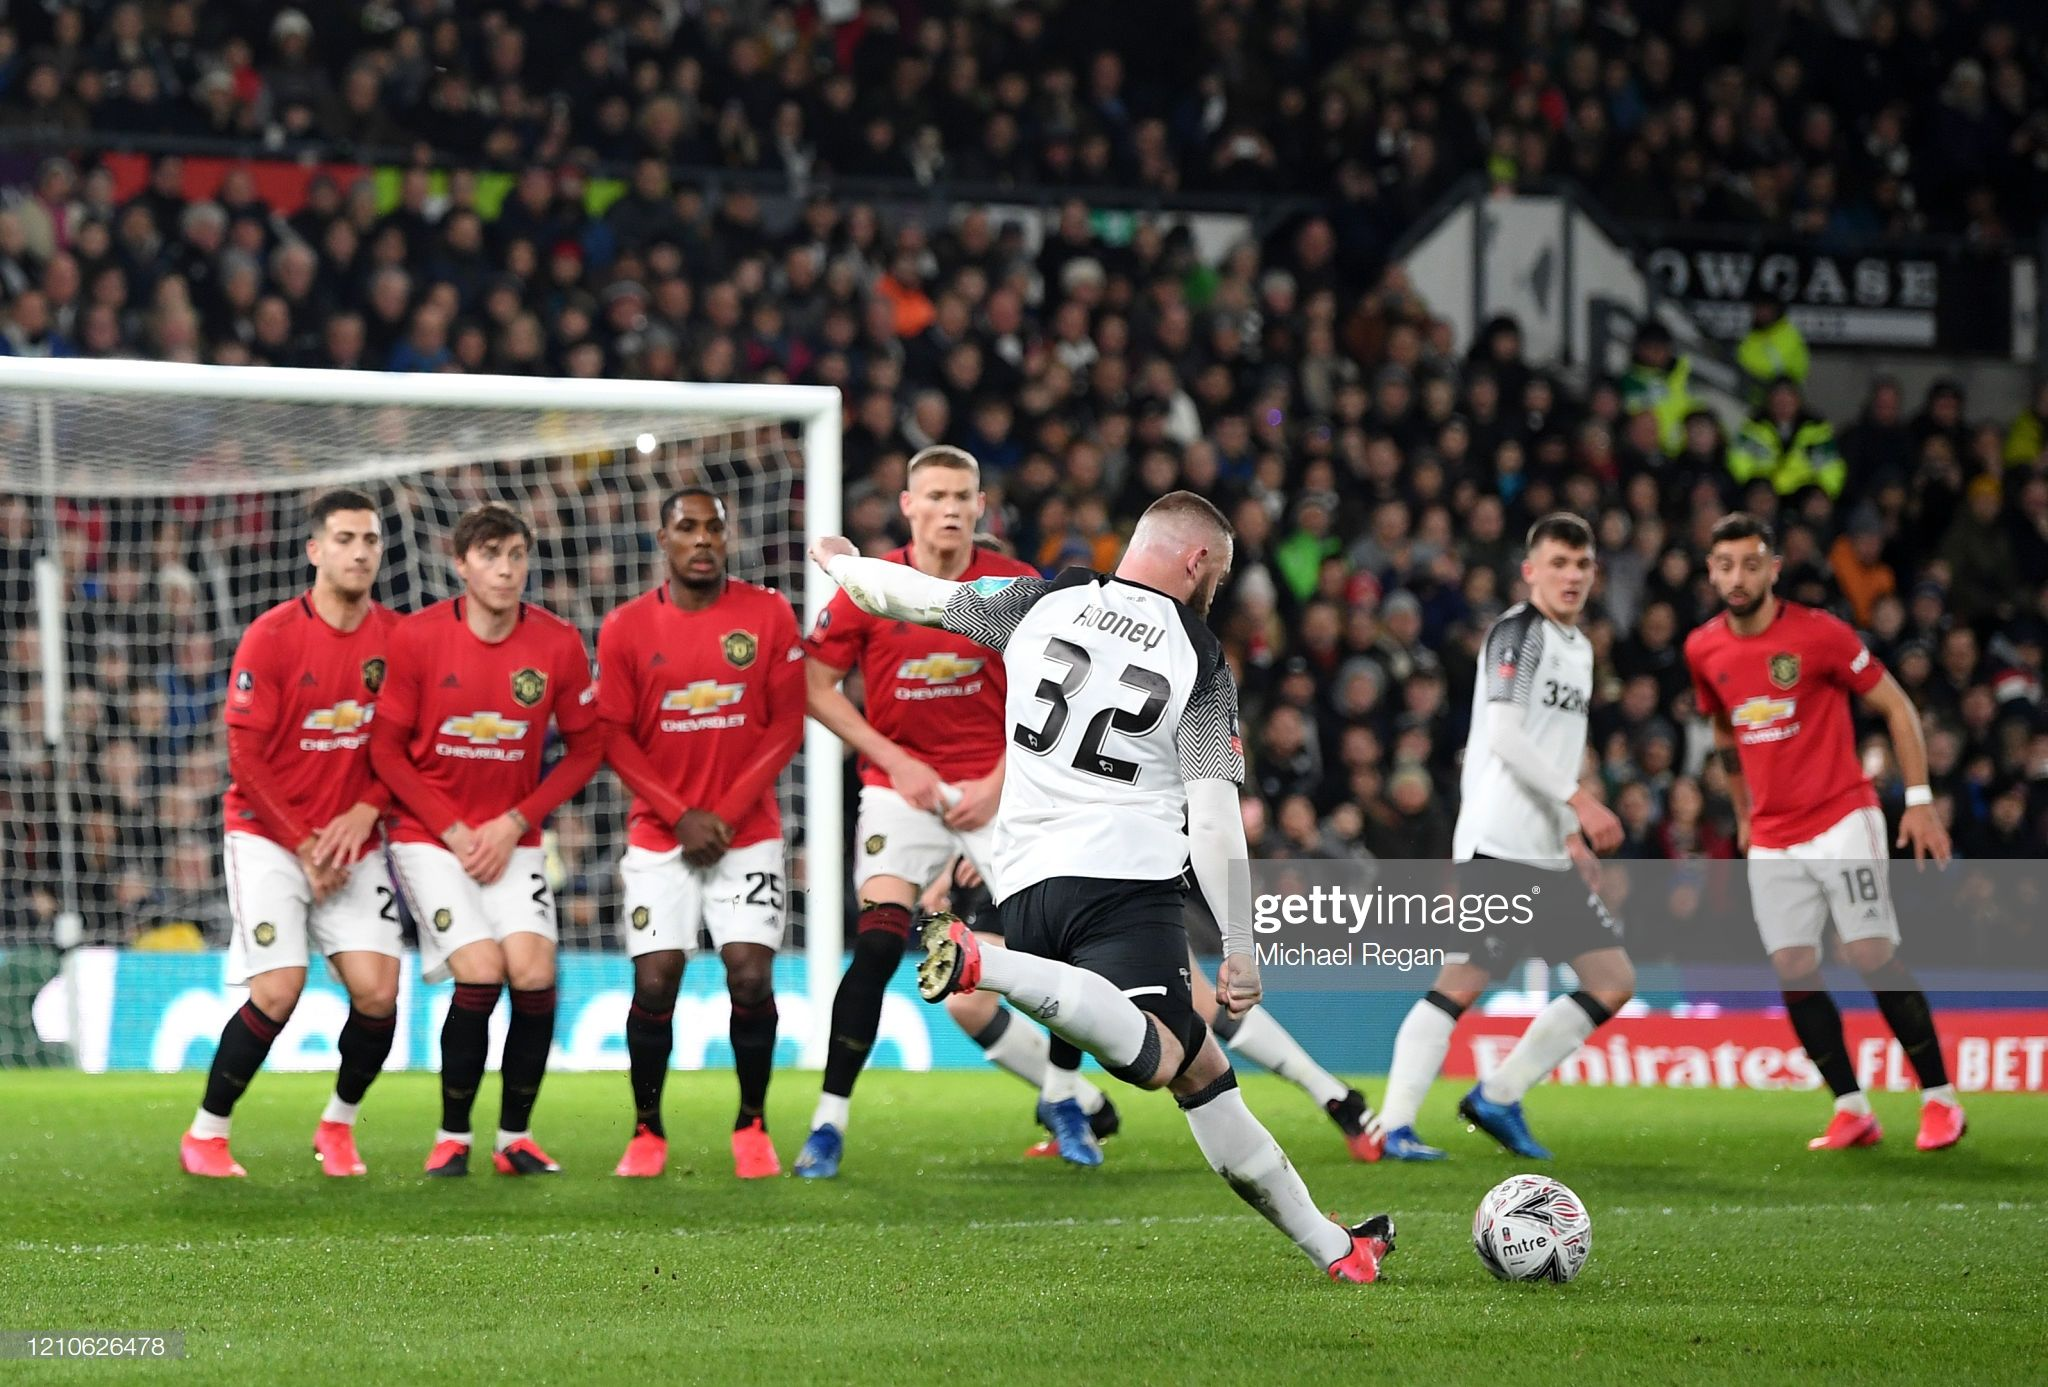 Wayne Rooney Of Derby County Takes A Free Kick During The Fa Cup In 2020 Wayne Rooney Manchester United Manchester United Legends